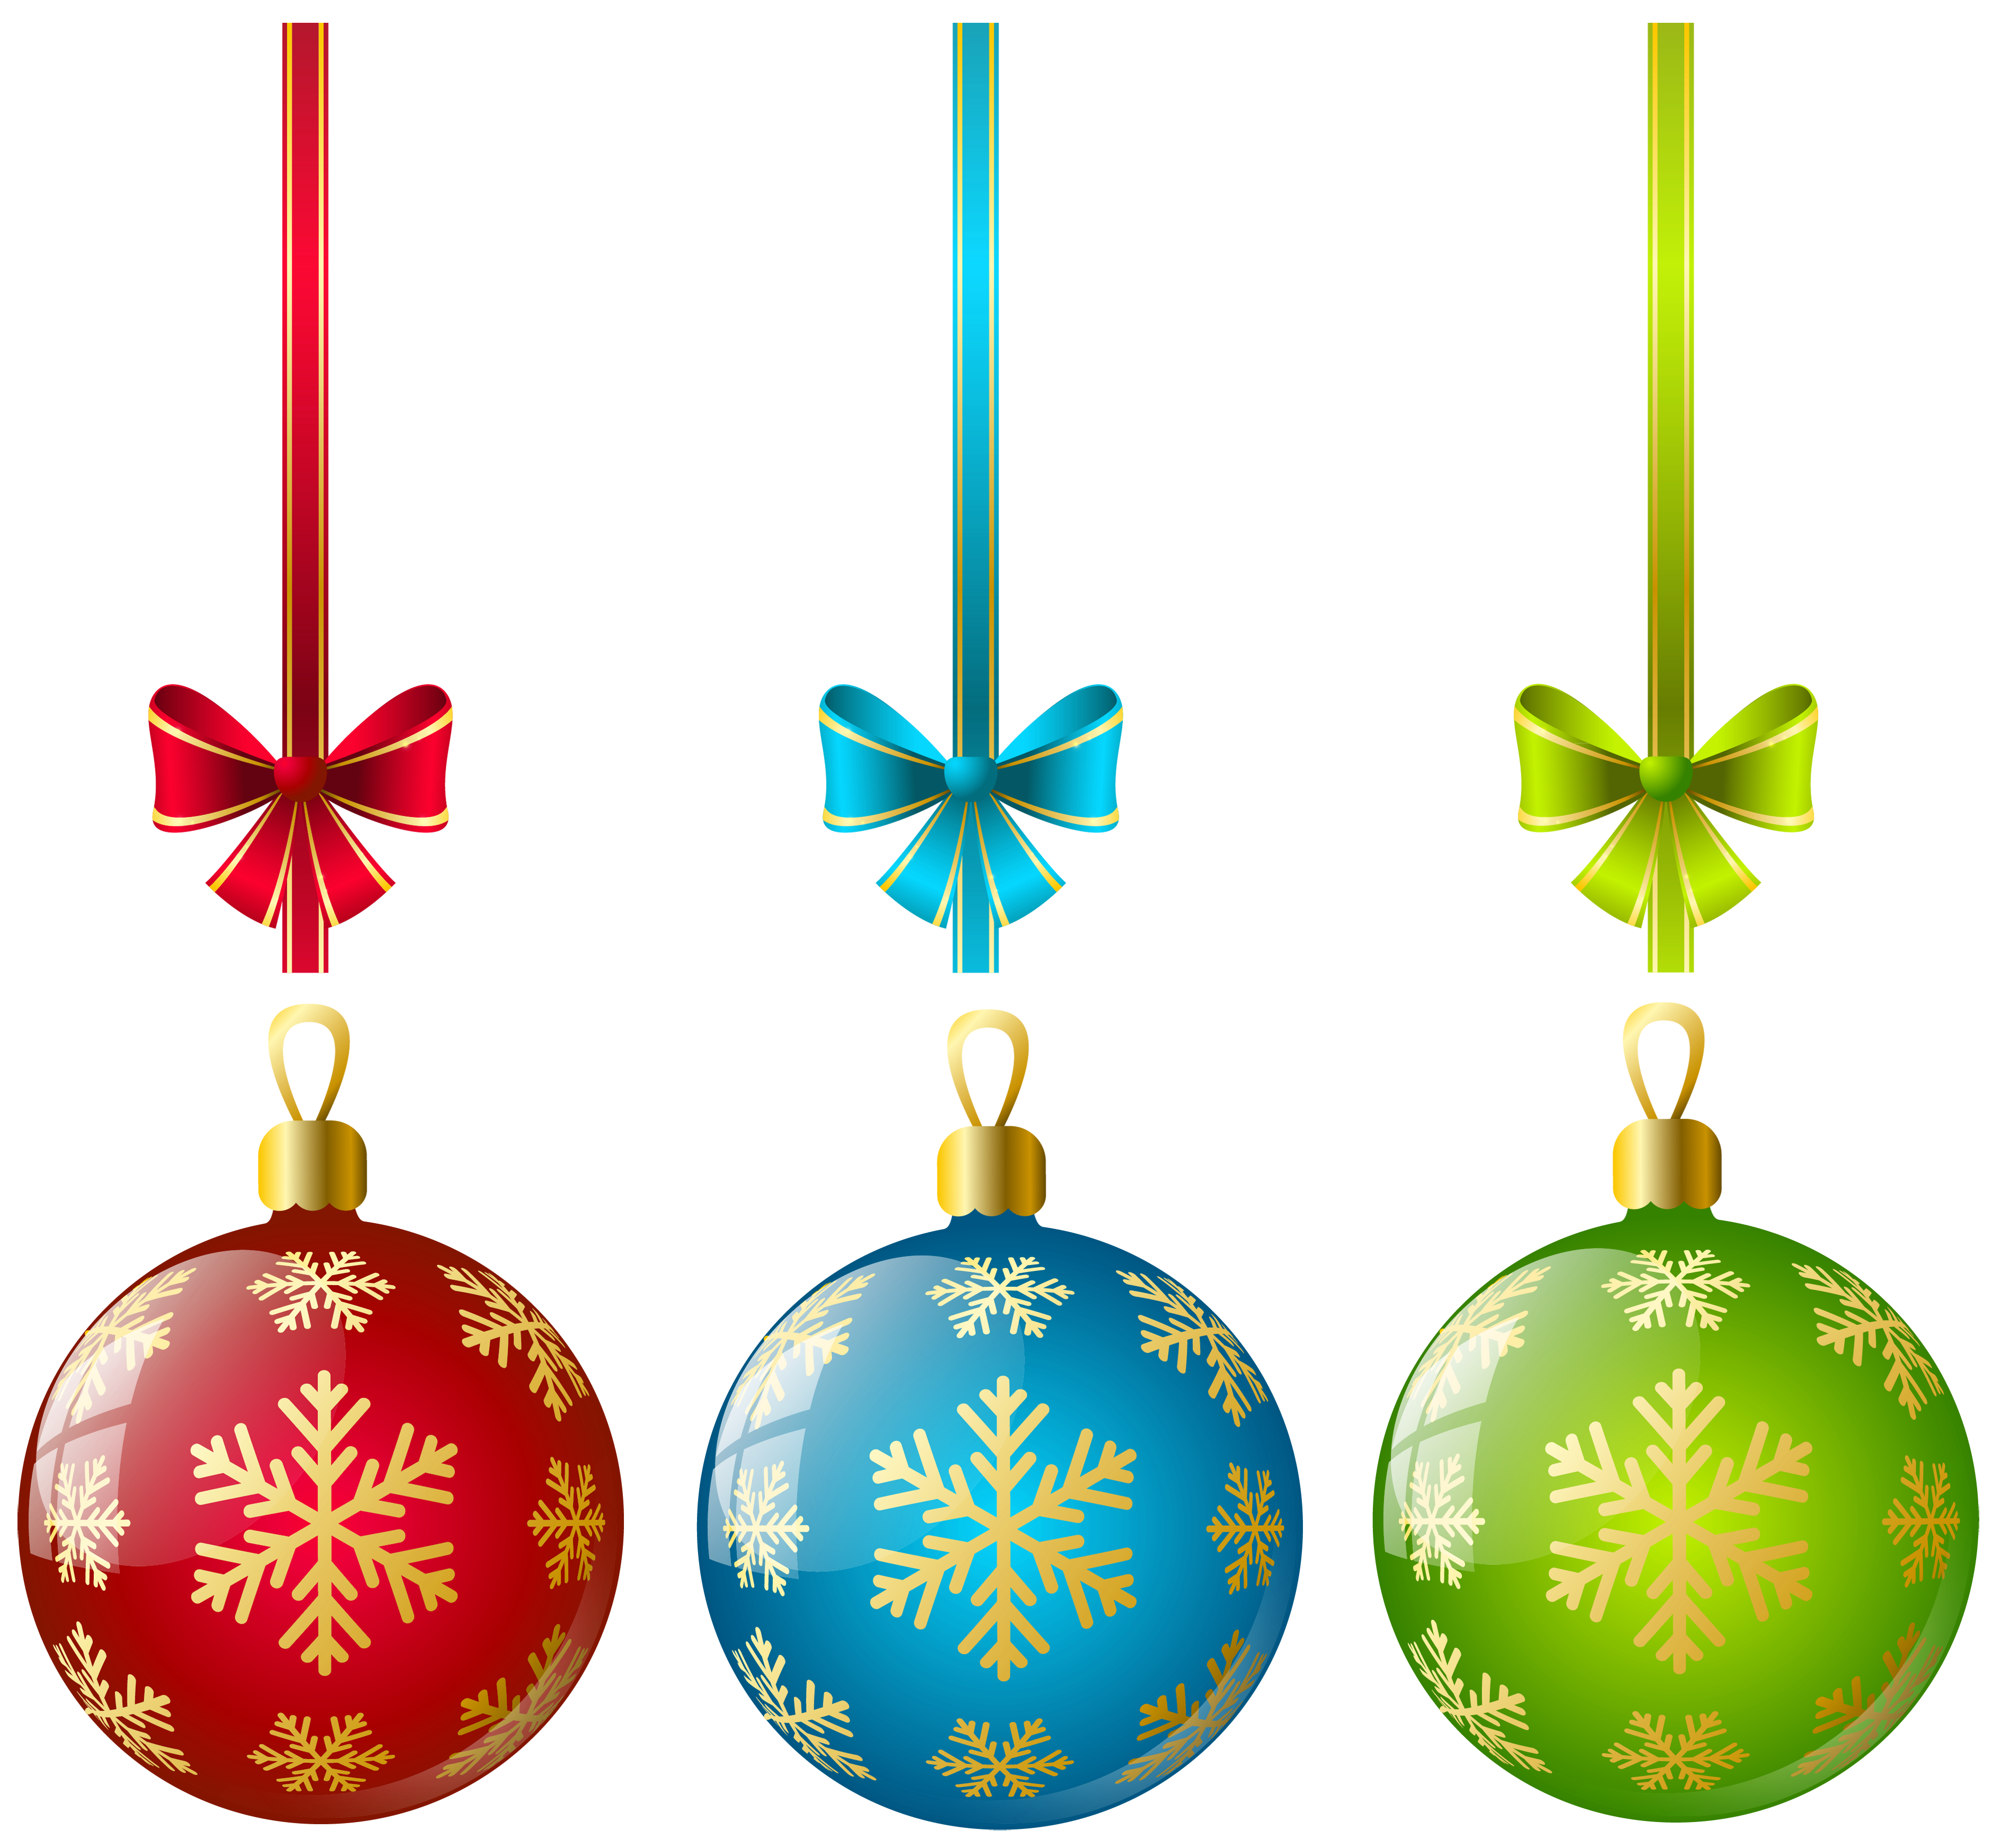 Background clipart christmas decoration Christmas Transparent Ball Large clipart